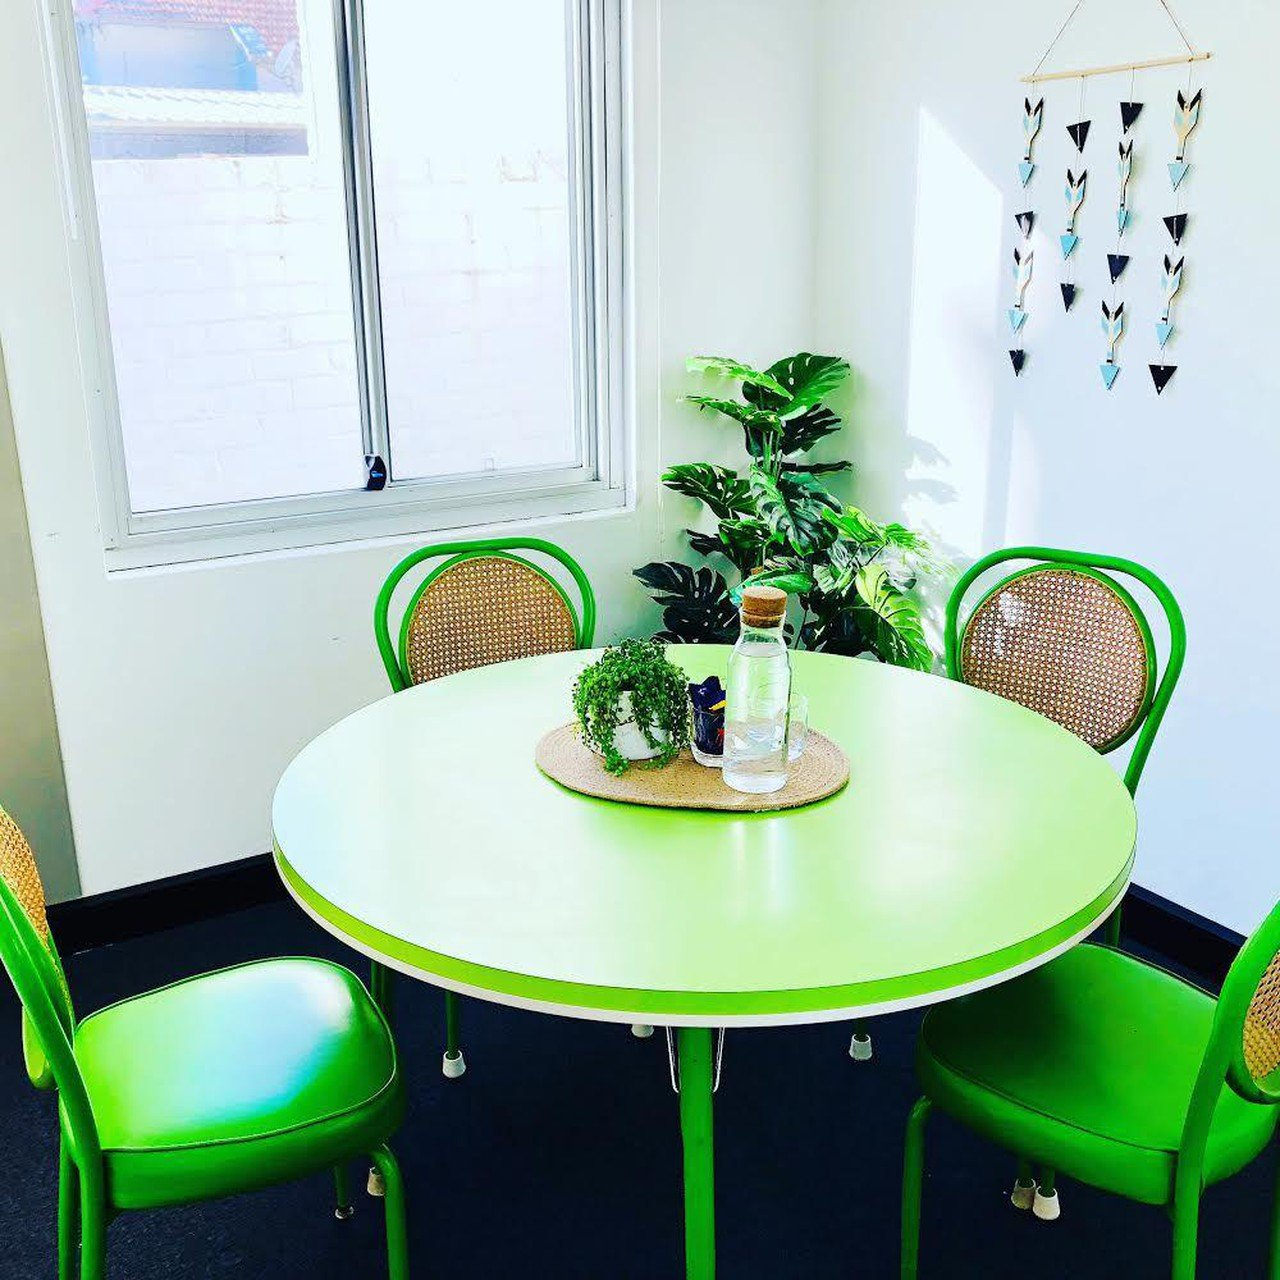 Sydney conference rooms Meetingraum Little Space - image 0